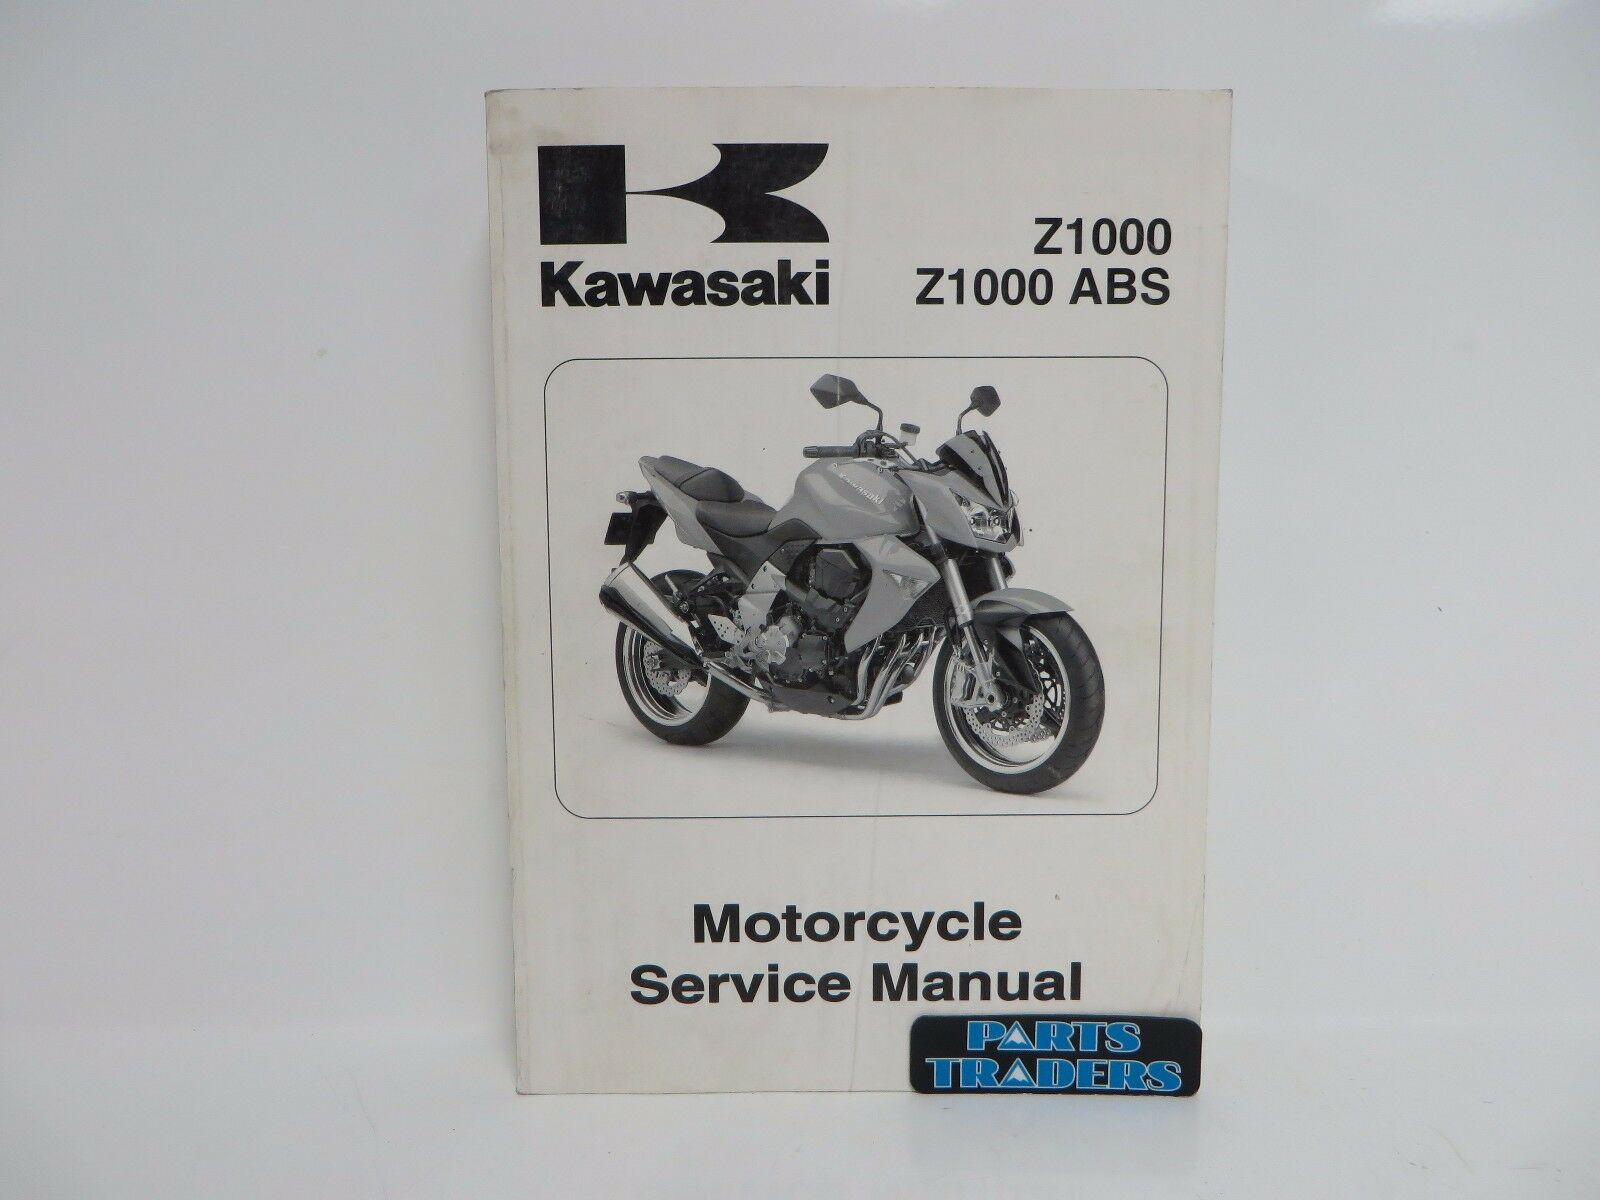 Oem Kawasaki Service Repair Manual Book Z1000 Abs Zr1000 2007 Wiring Diagram Zr1000b7f C7f Ebay